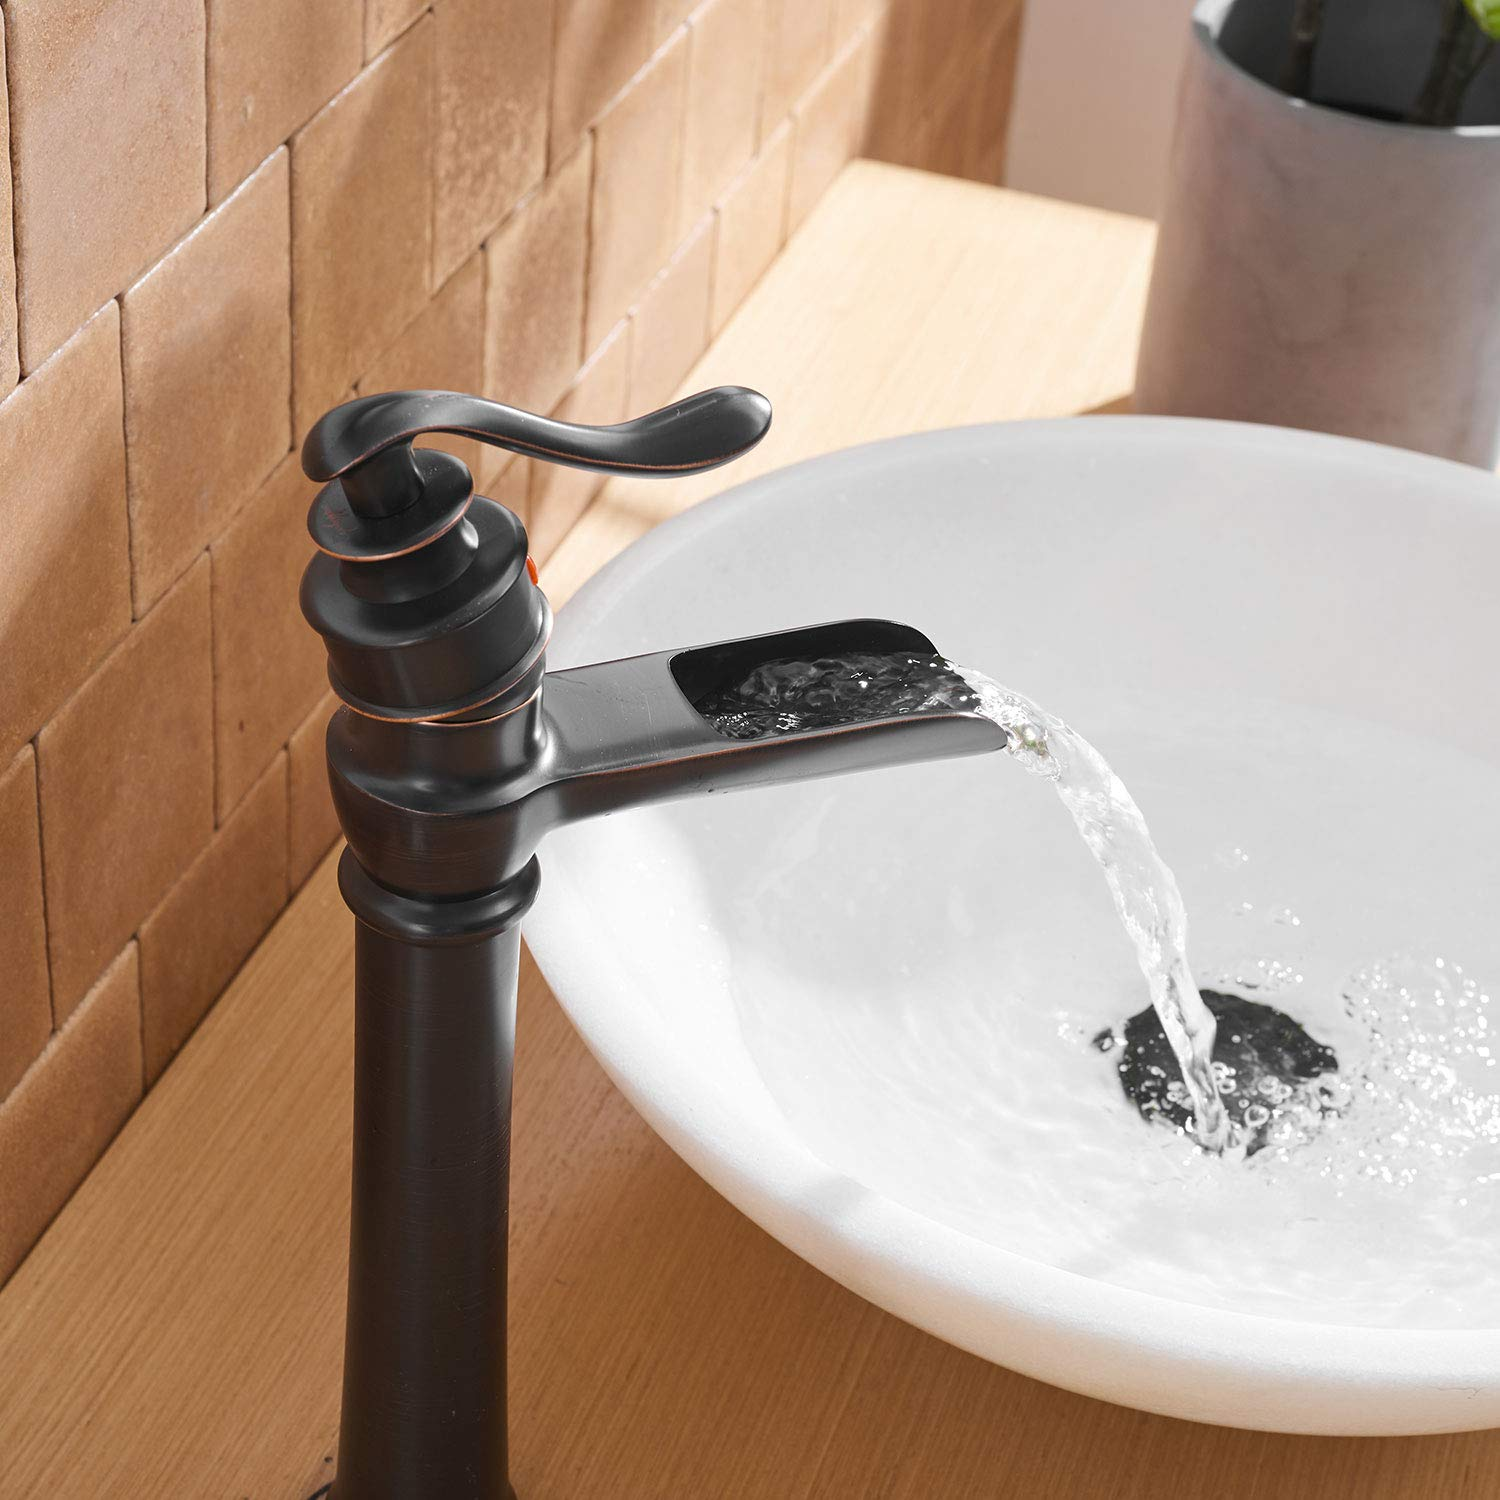 waterfall spout oil rubbed bronze bathroom faucet deck mounted vessel sink single lever handle commercial basin mixer tap faucet one hole